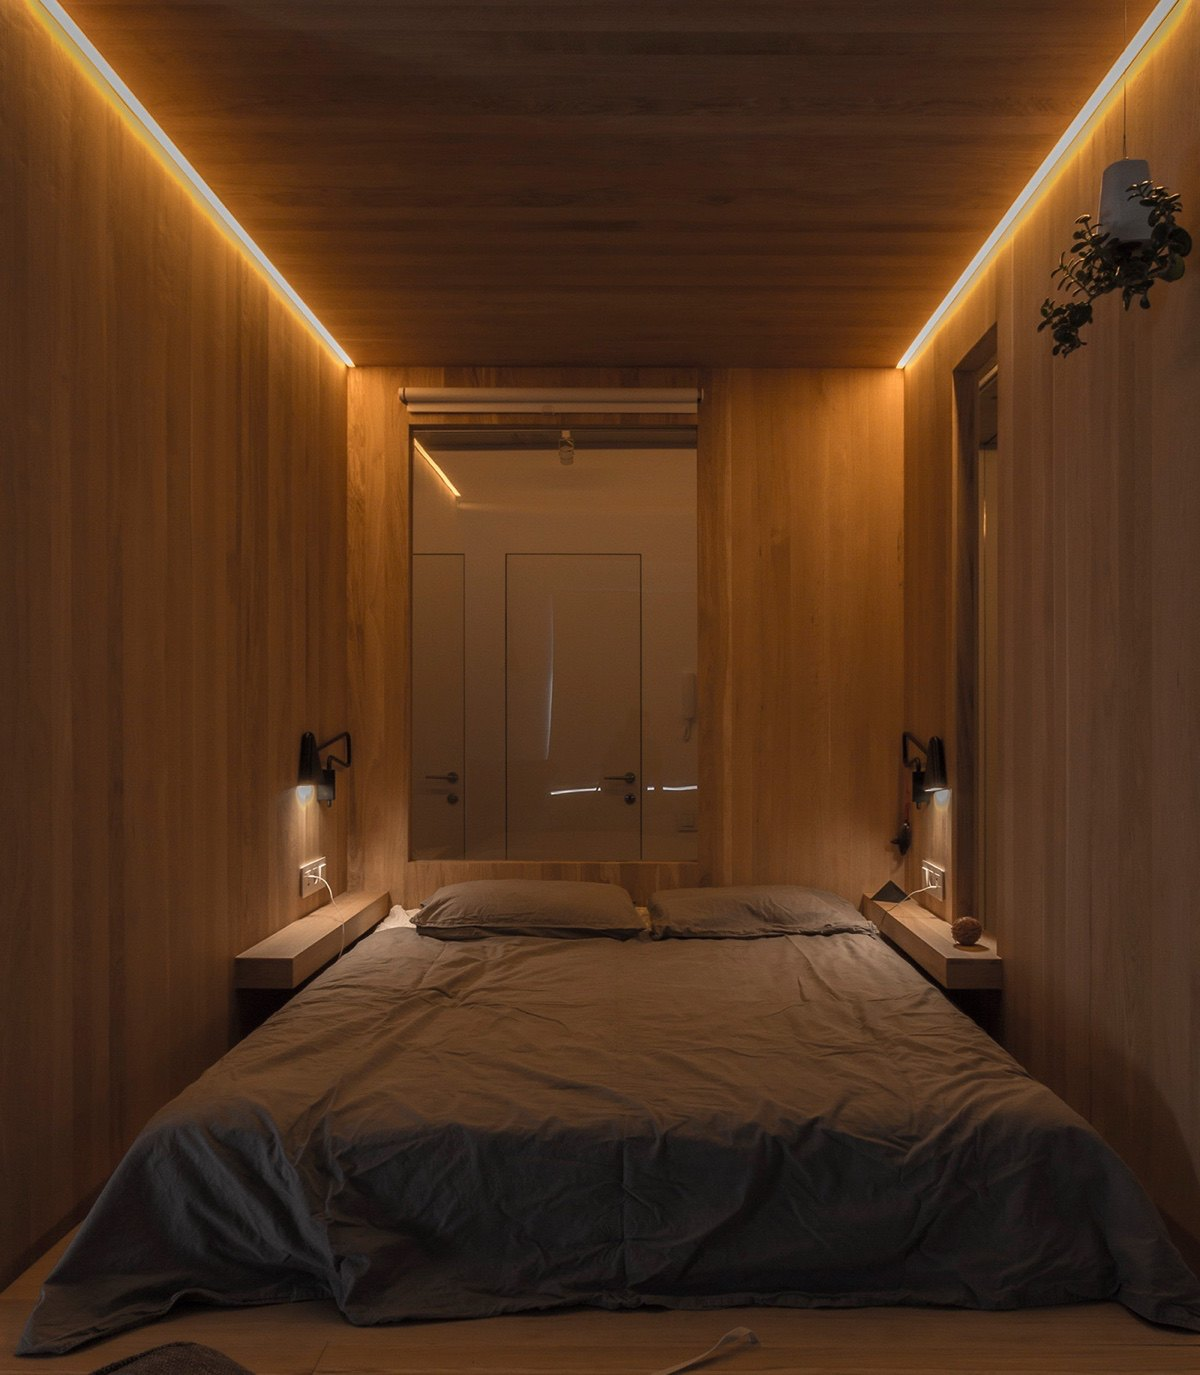 LED Lit Bedroom Wooden Walls Minimalist Grey Bedding - Super small studio apartment under 50 square meters includes floor plan